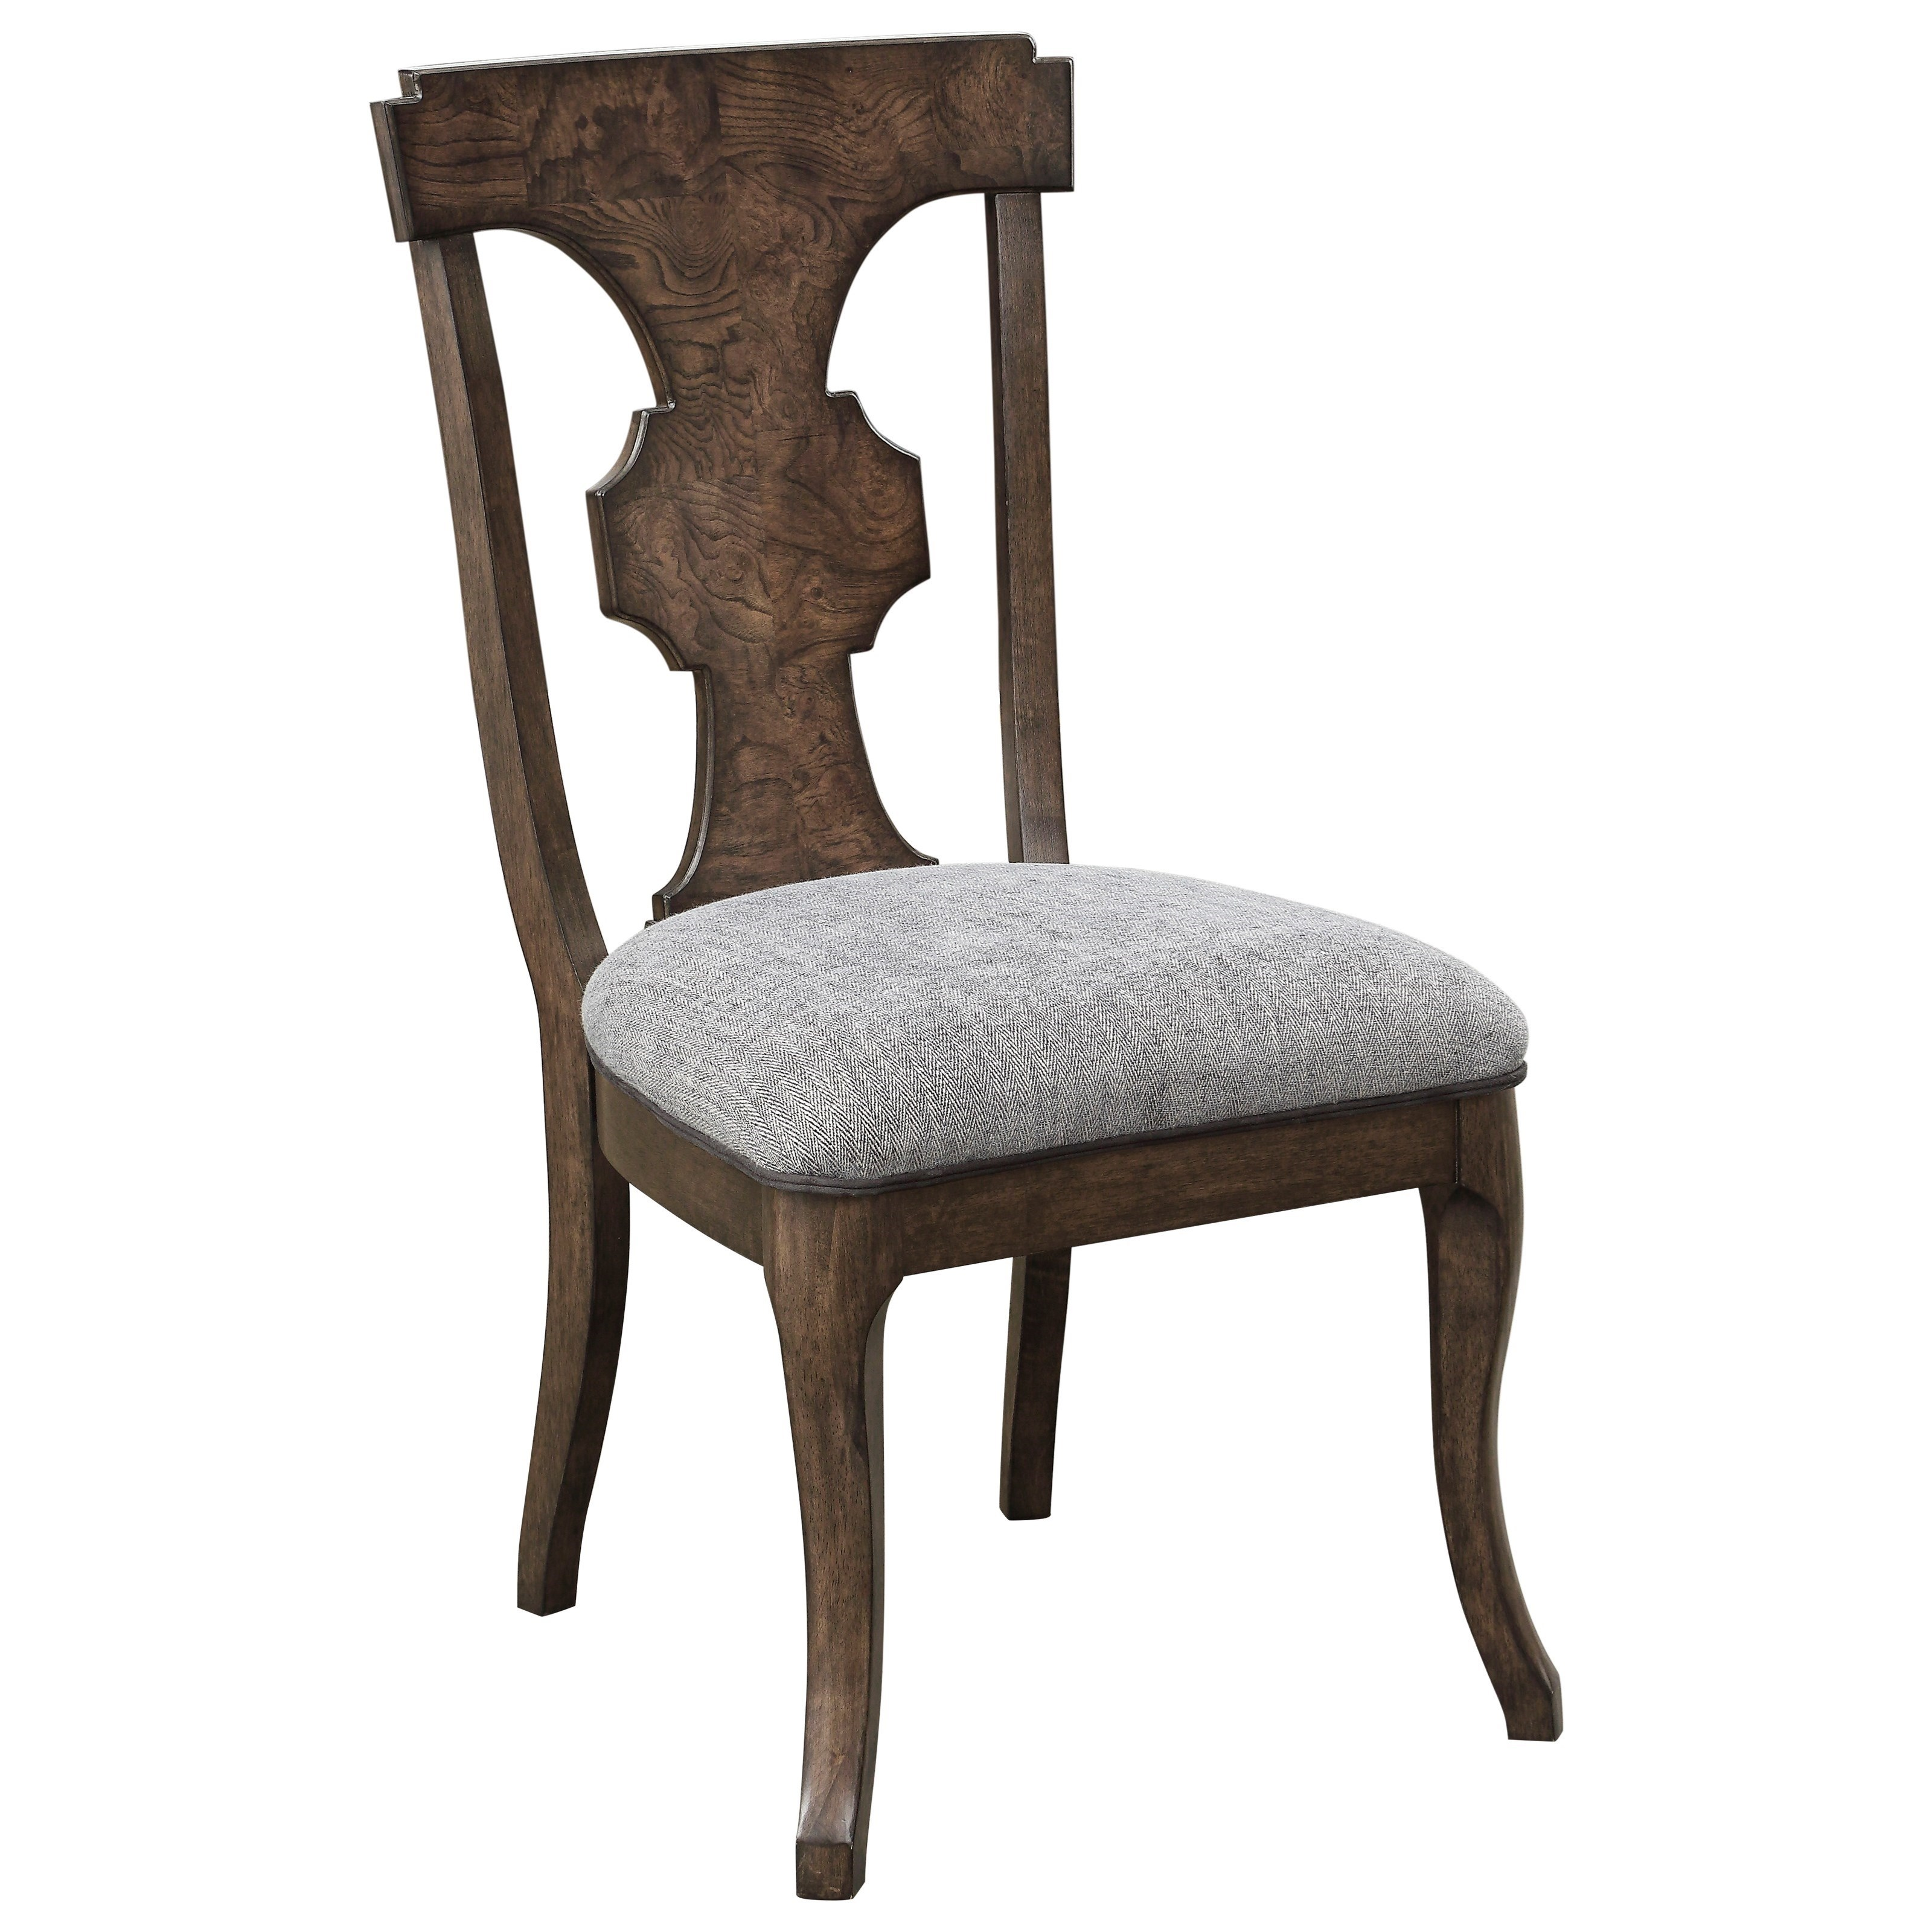 Landmark Splat Back Side Chair by A.R.T. Furniture Inc at Dream Home Interiors